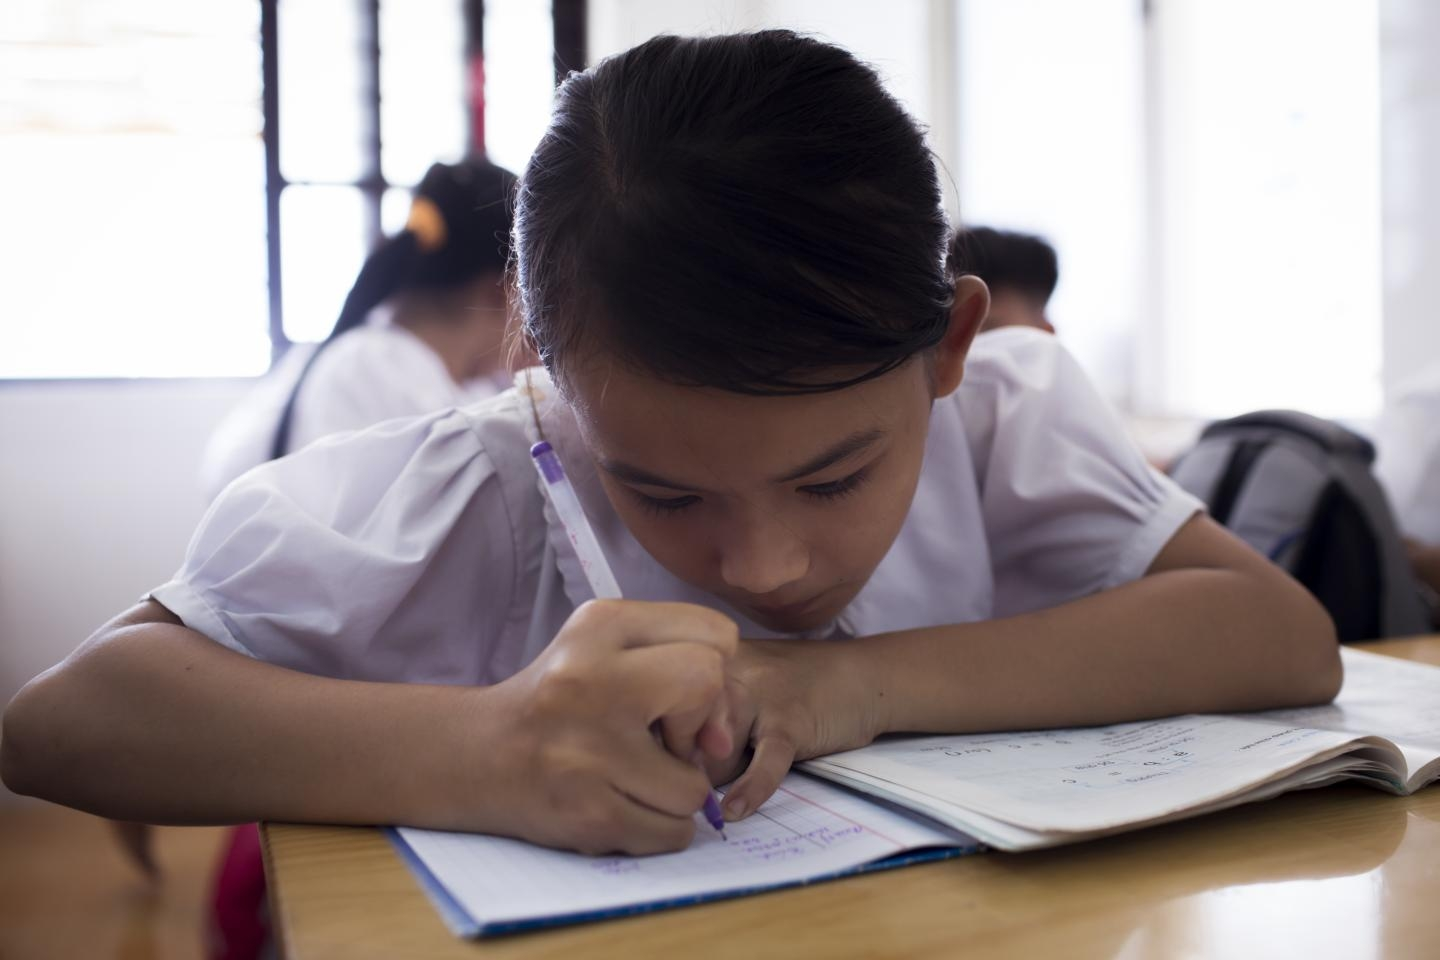 How has COVID 19 affected girls' education?